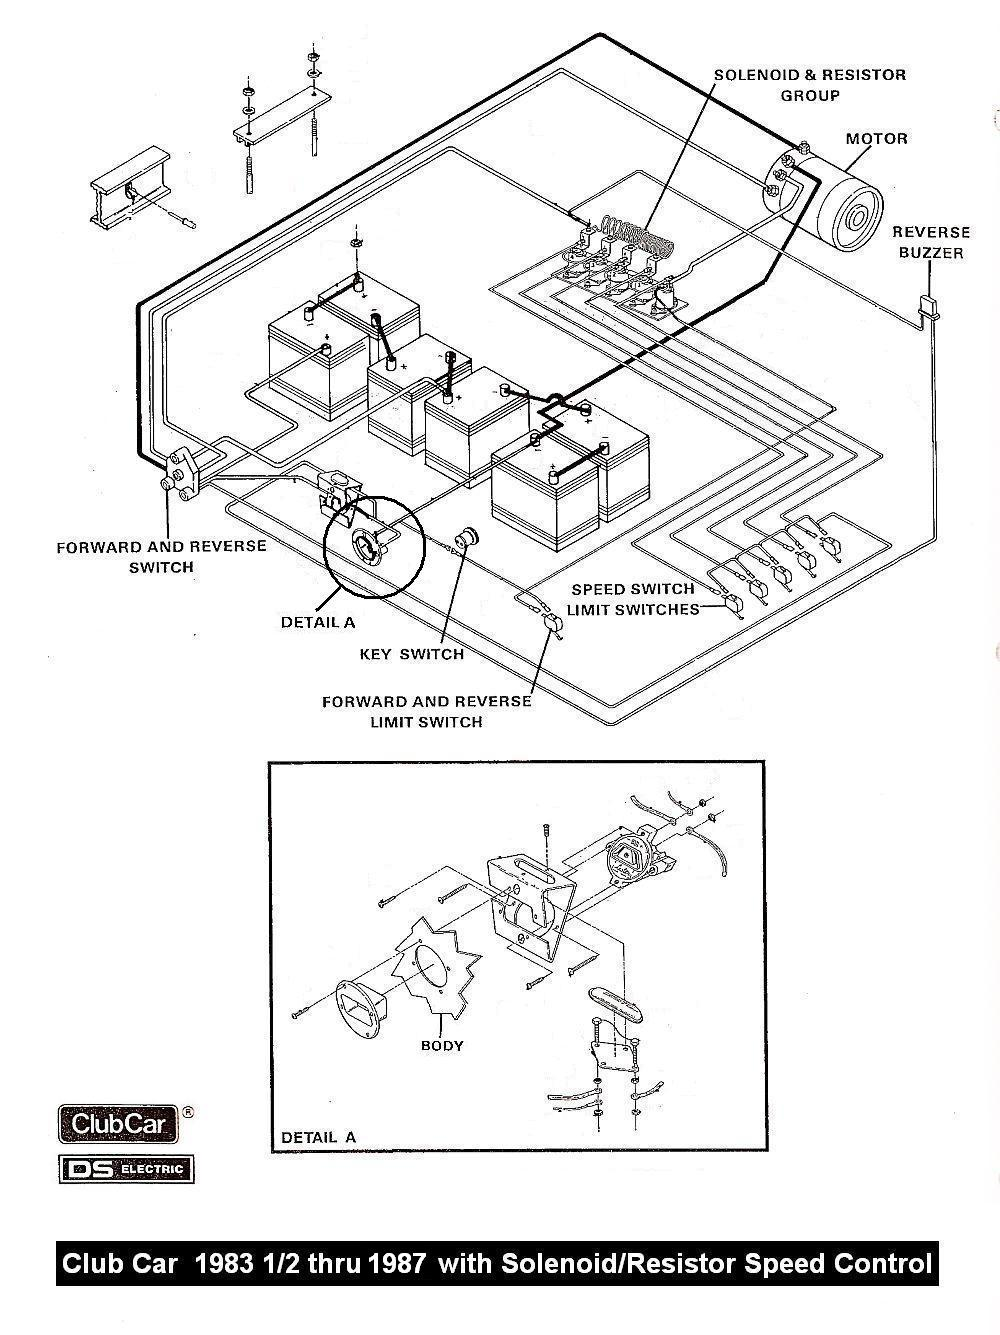 2000 Club Car Ds Wiring Diagram Simple Guide About Toyota Engine P062dno1 Electric Diagrams